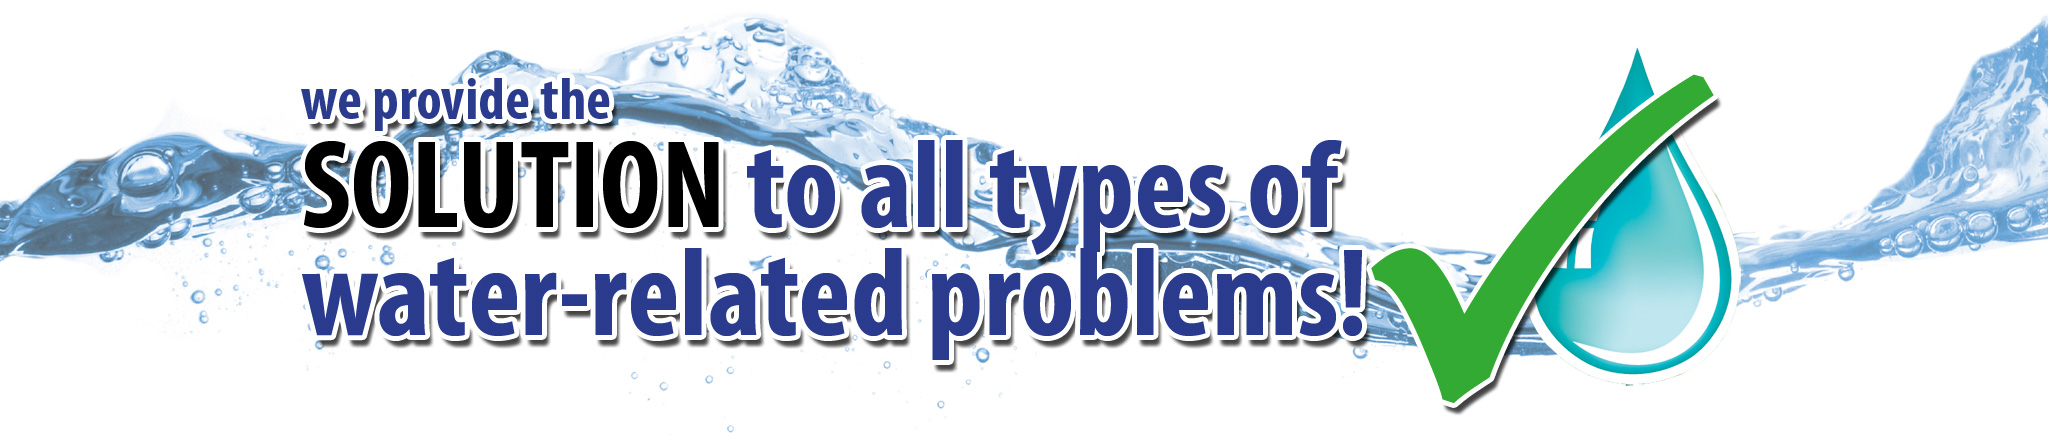 We provide the solution to all types of water-related problems-Reverse Osmosis Systems